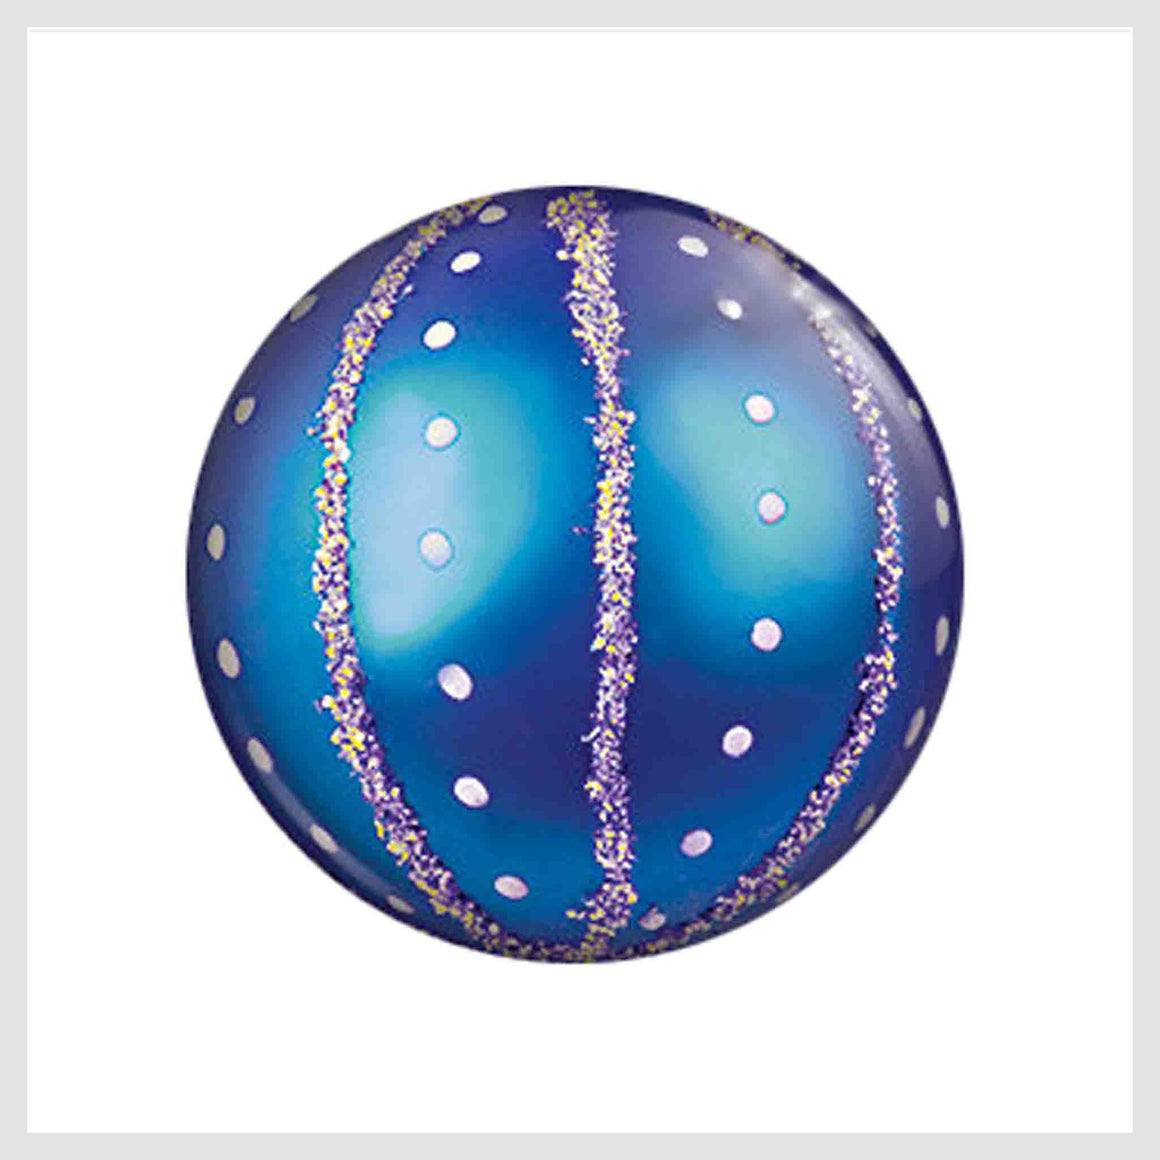 Painted Enamel Christmas Tree Ornament Blue 20mm - Beads and Dangles